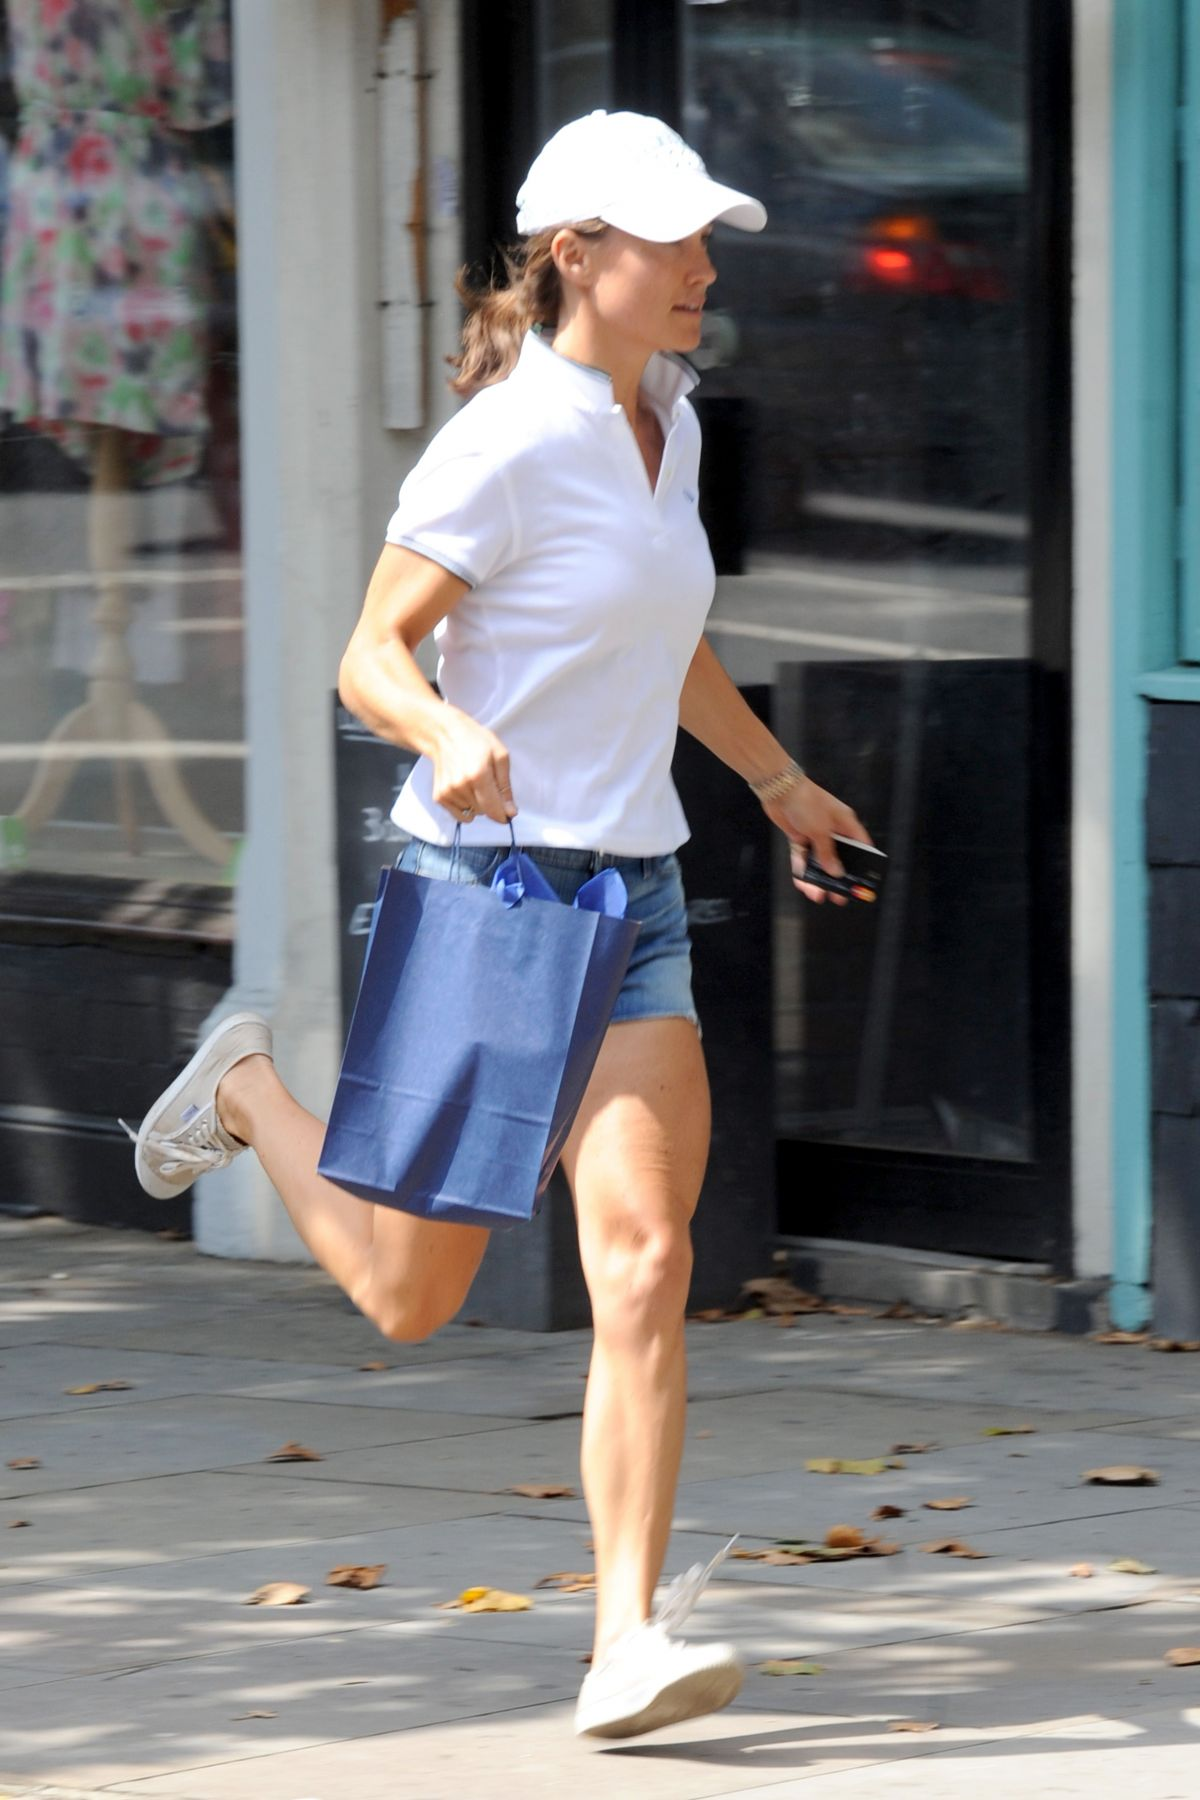 PIPPA MIDDLETON in Denim Shorts Running Out at Kings Road in London